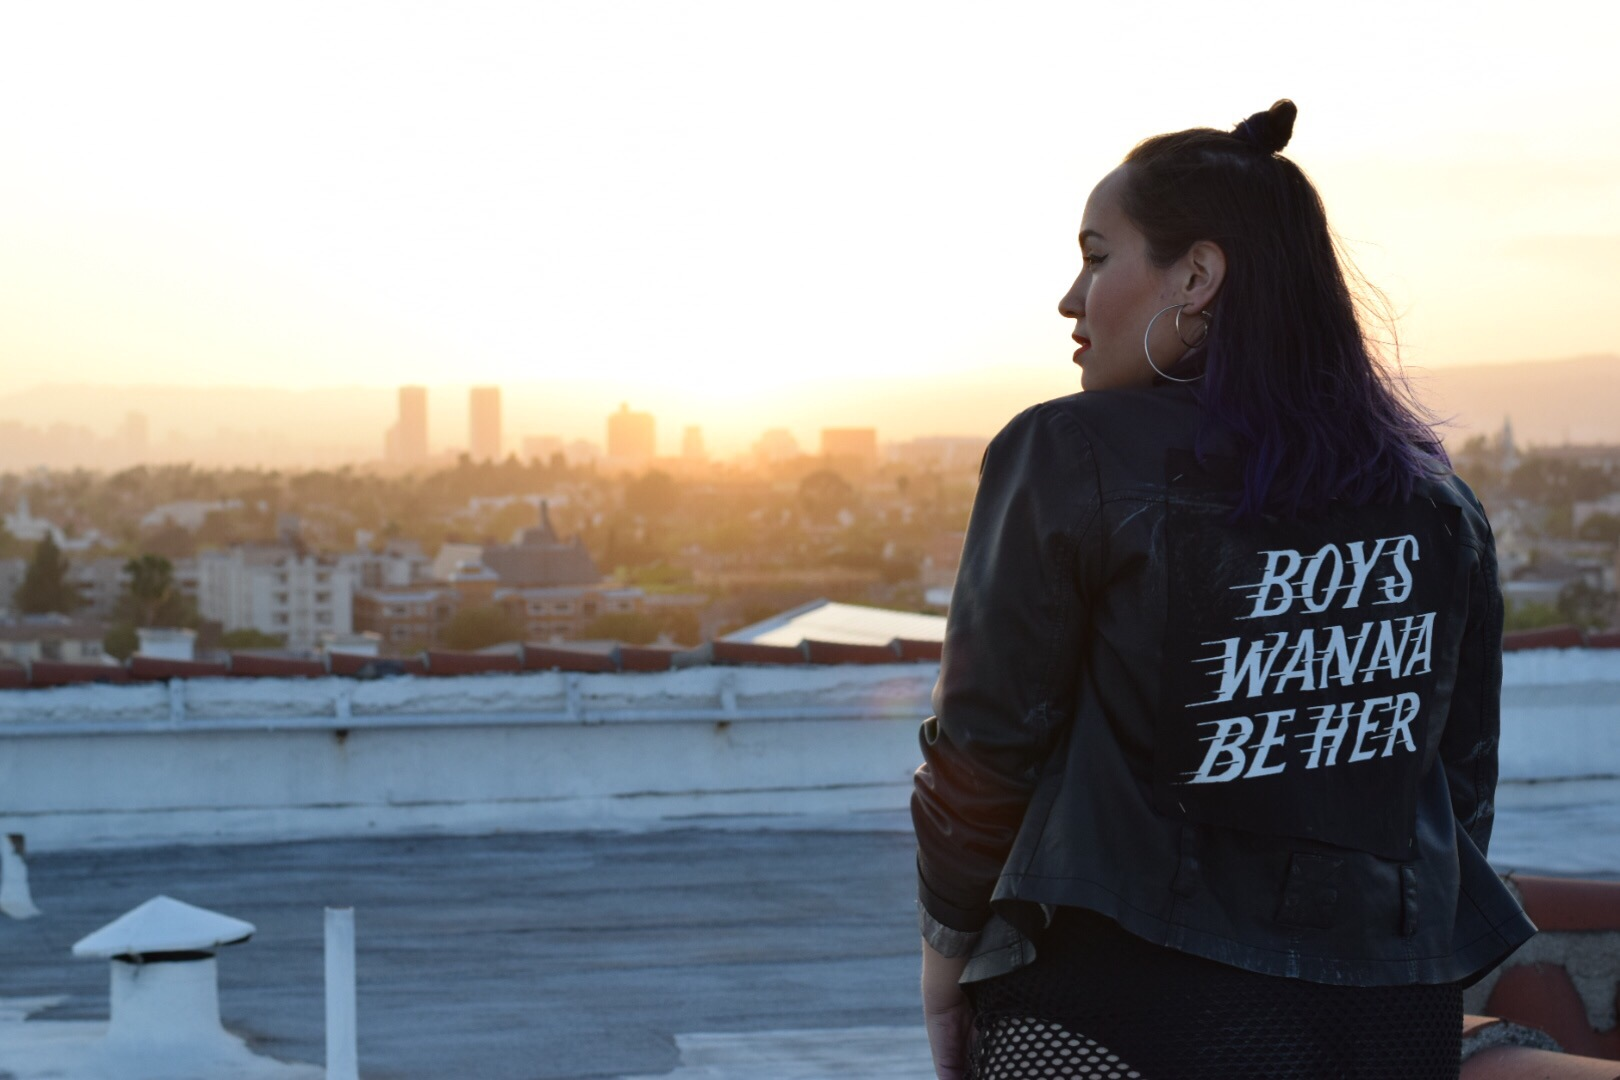 boys wanna be her back patch